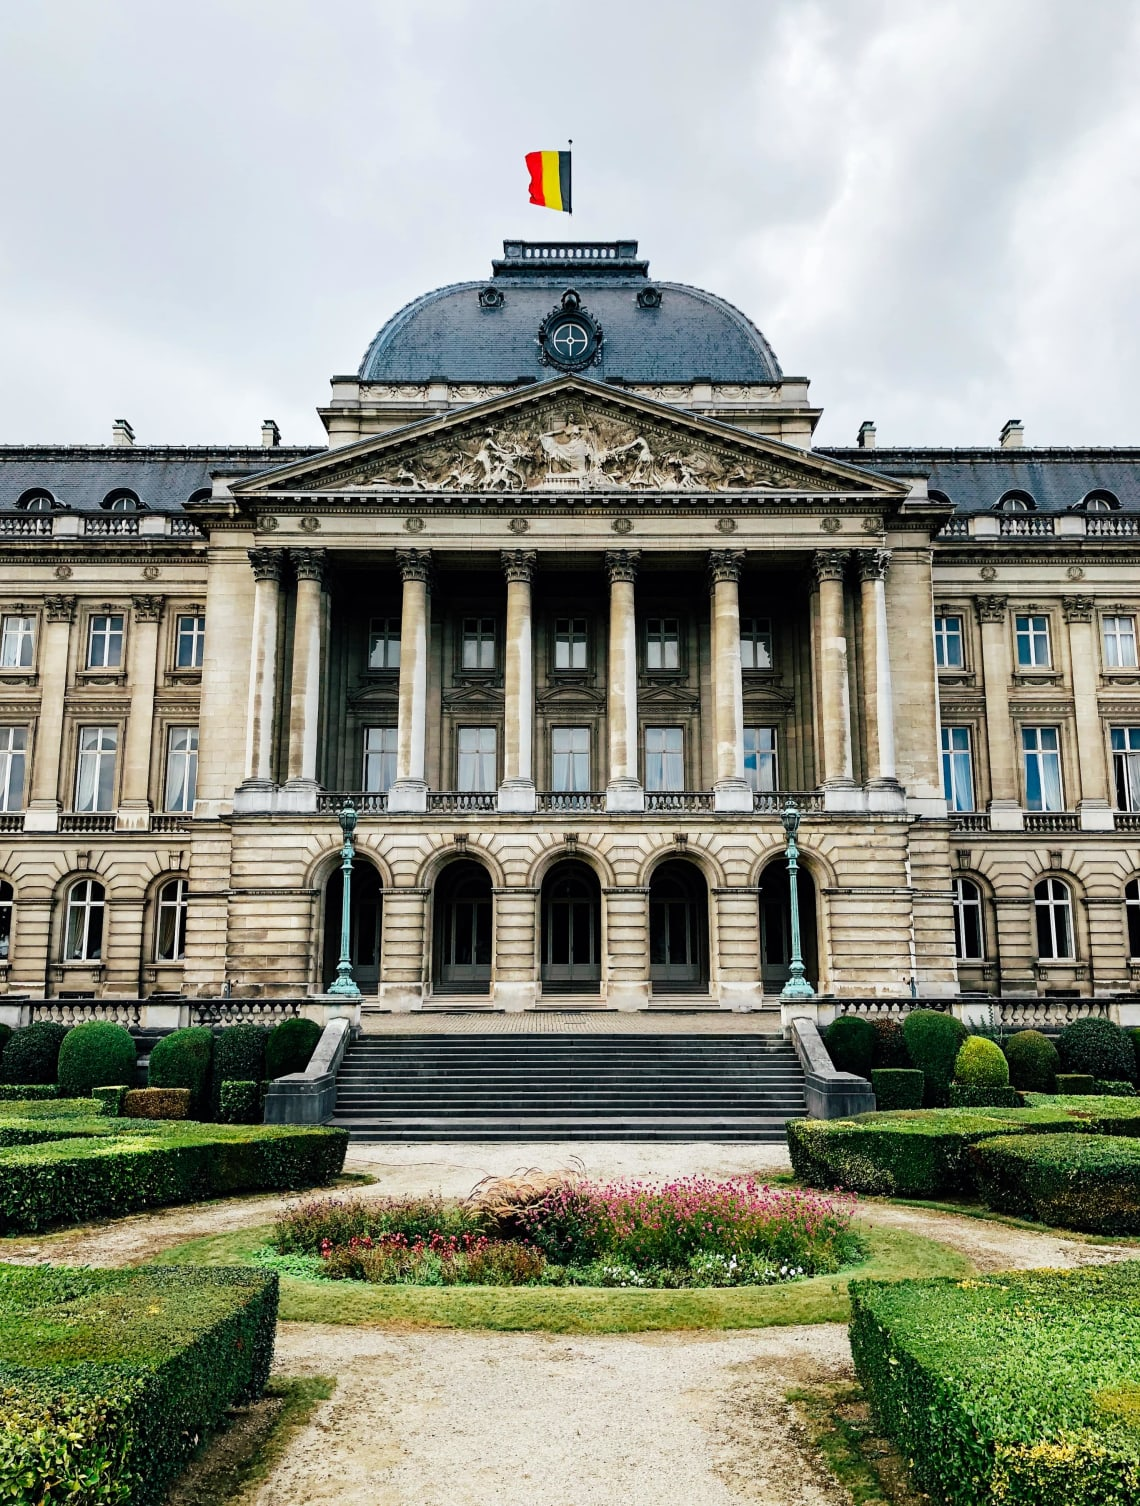 Places to visit in Brussels: Royal Palace